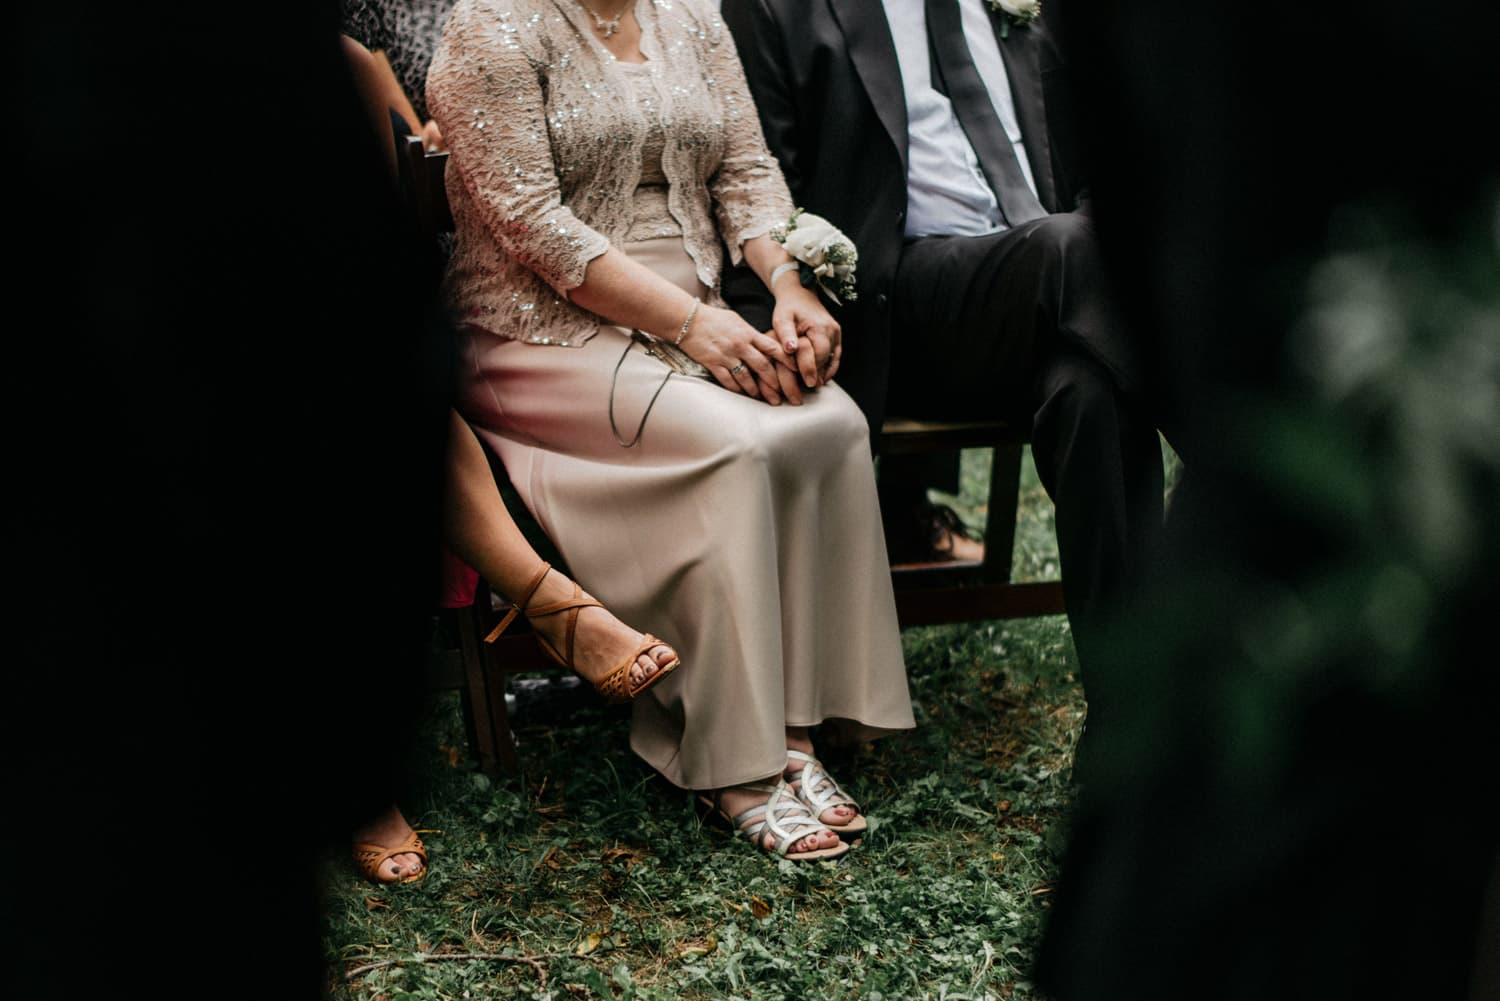 father and mother hold hands during wedding ceremony